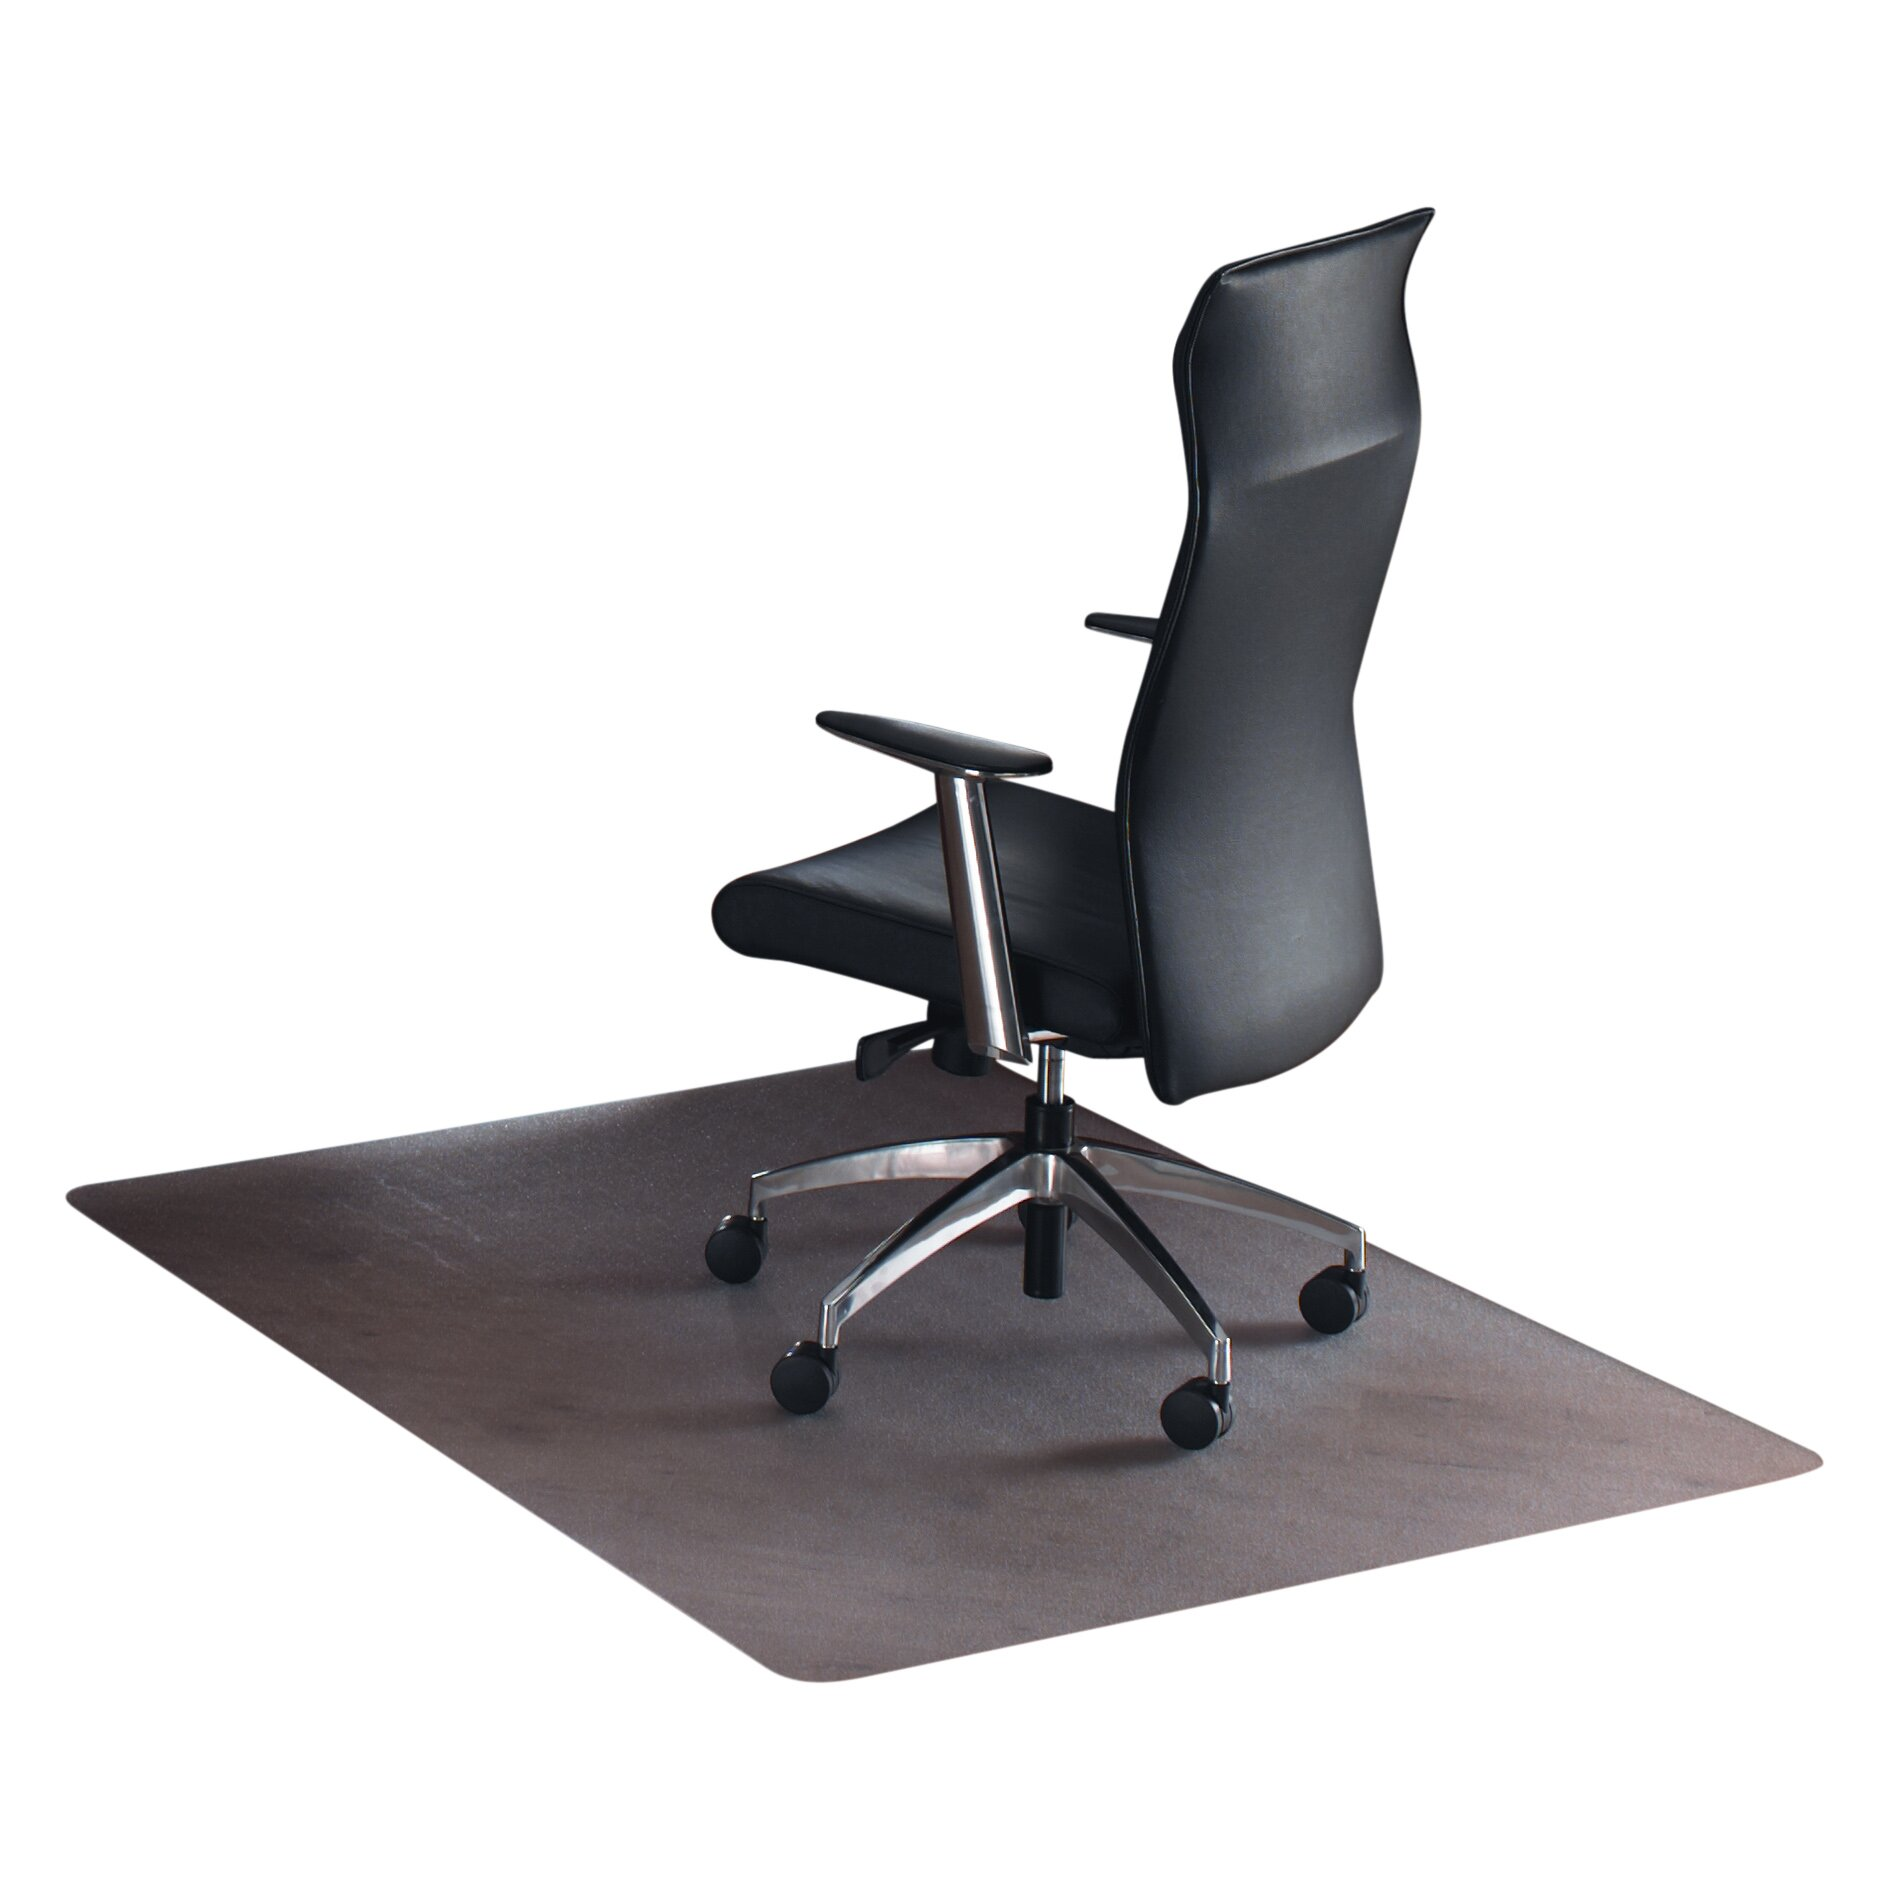 Desk chair mat for carpet